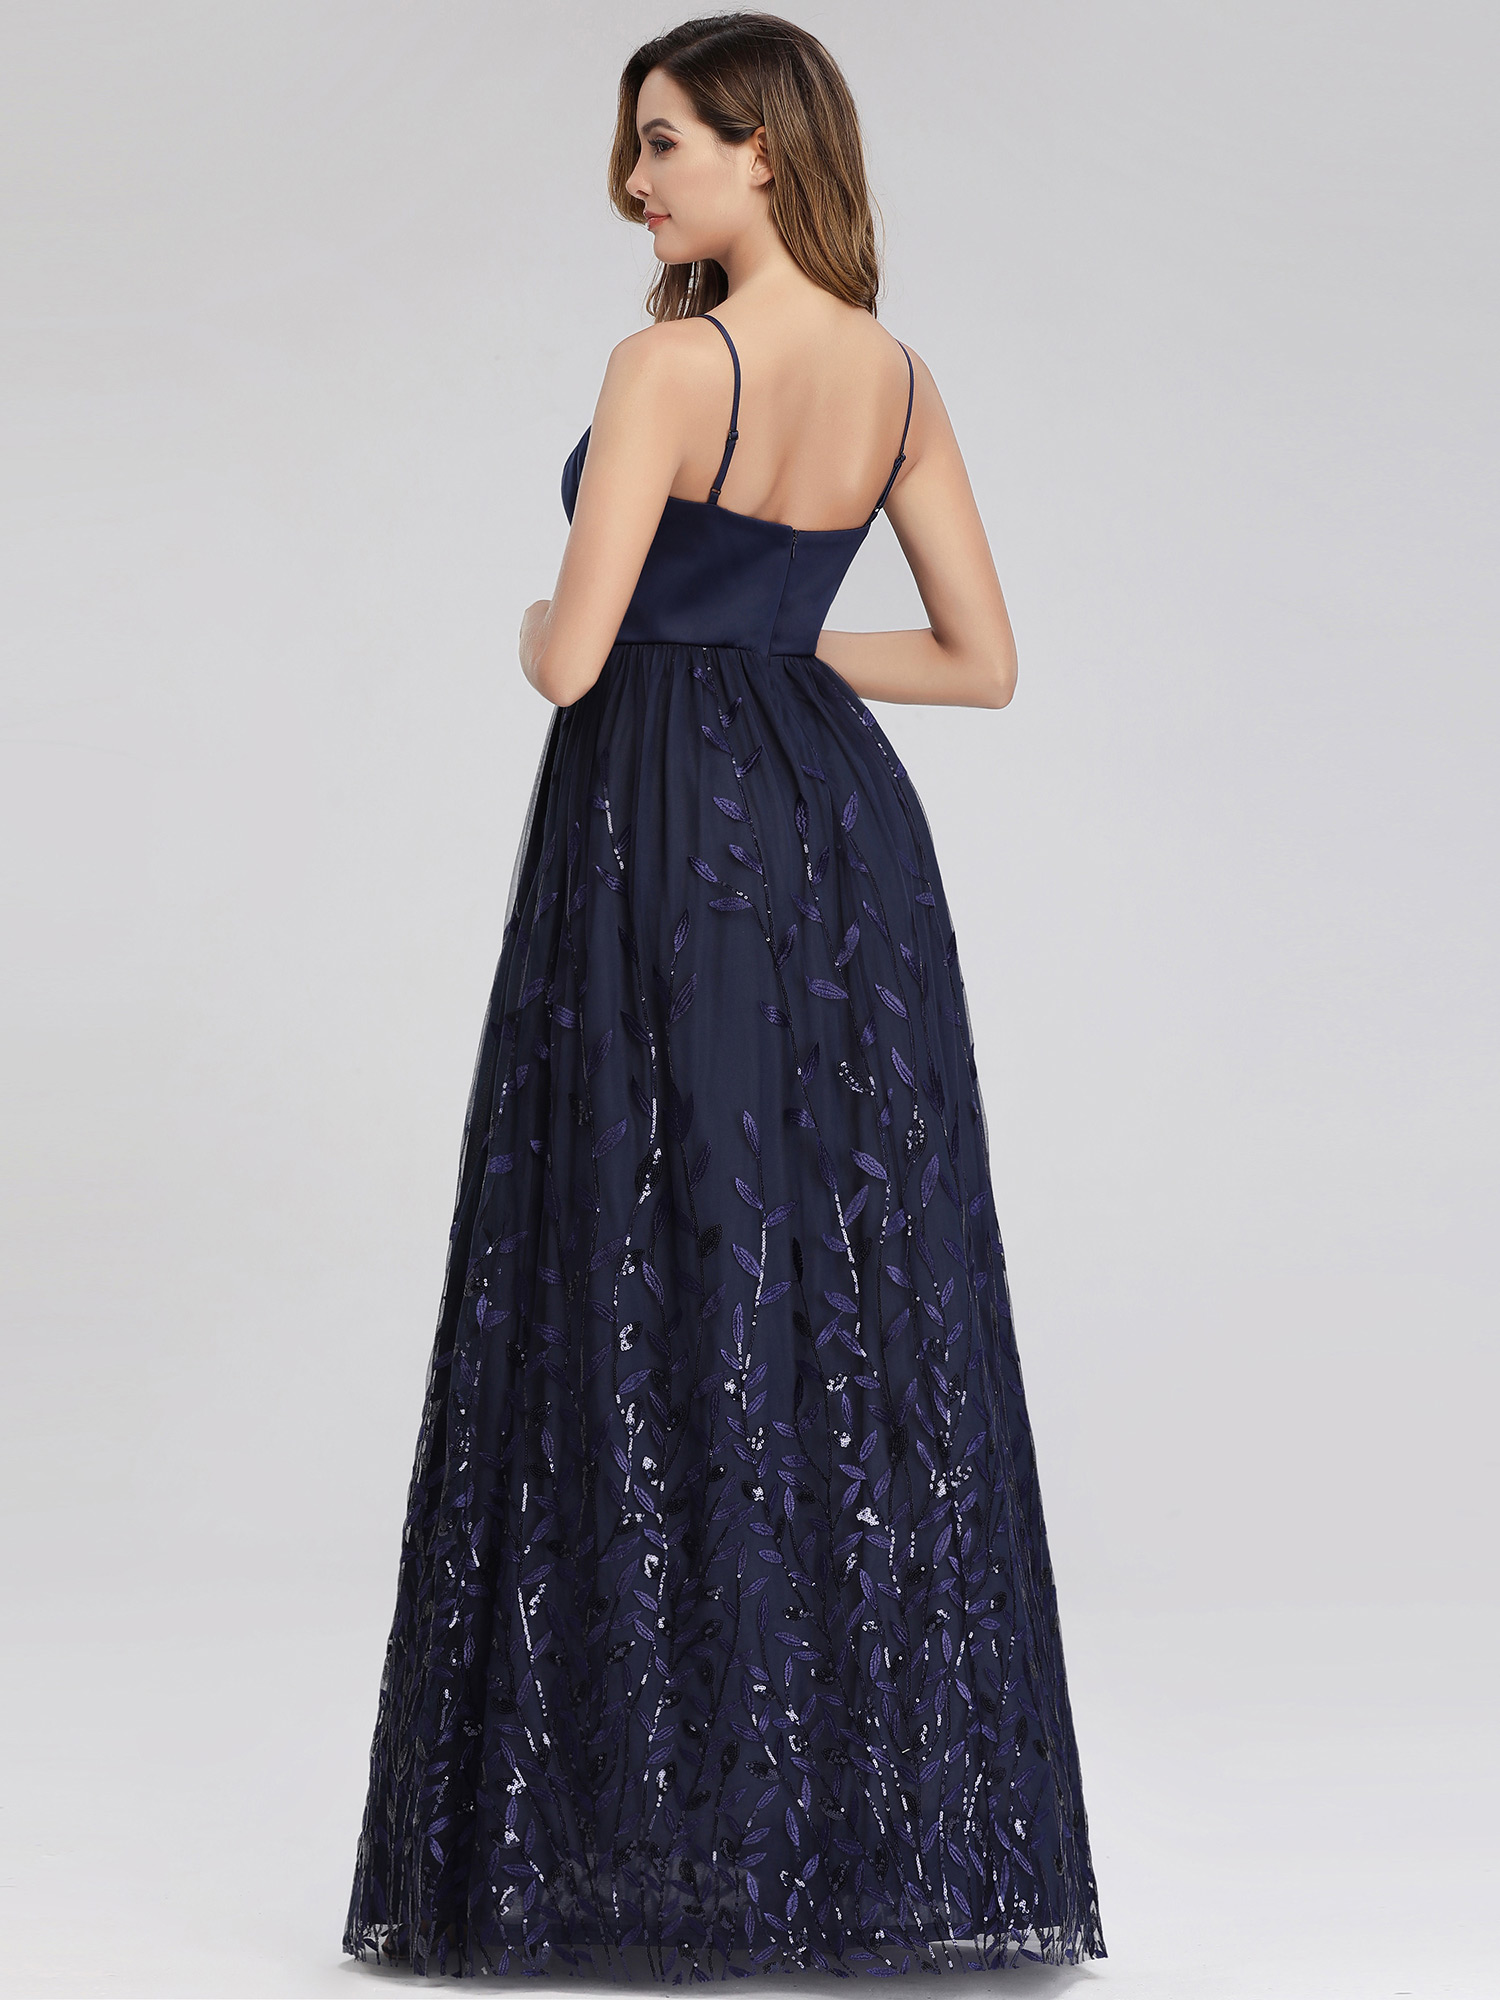 Ever-pretty-Women-A-line-Formal-Cocktail-Party-Dresses-Homecoming-Evening-Proms thumbnail 5